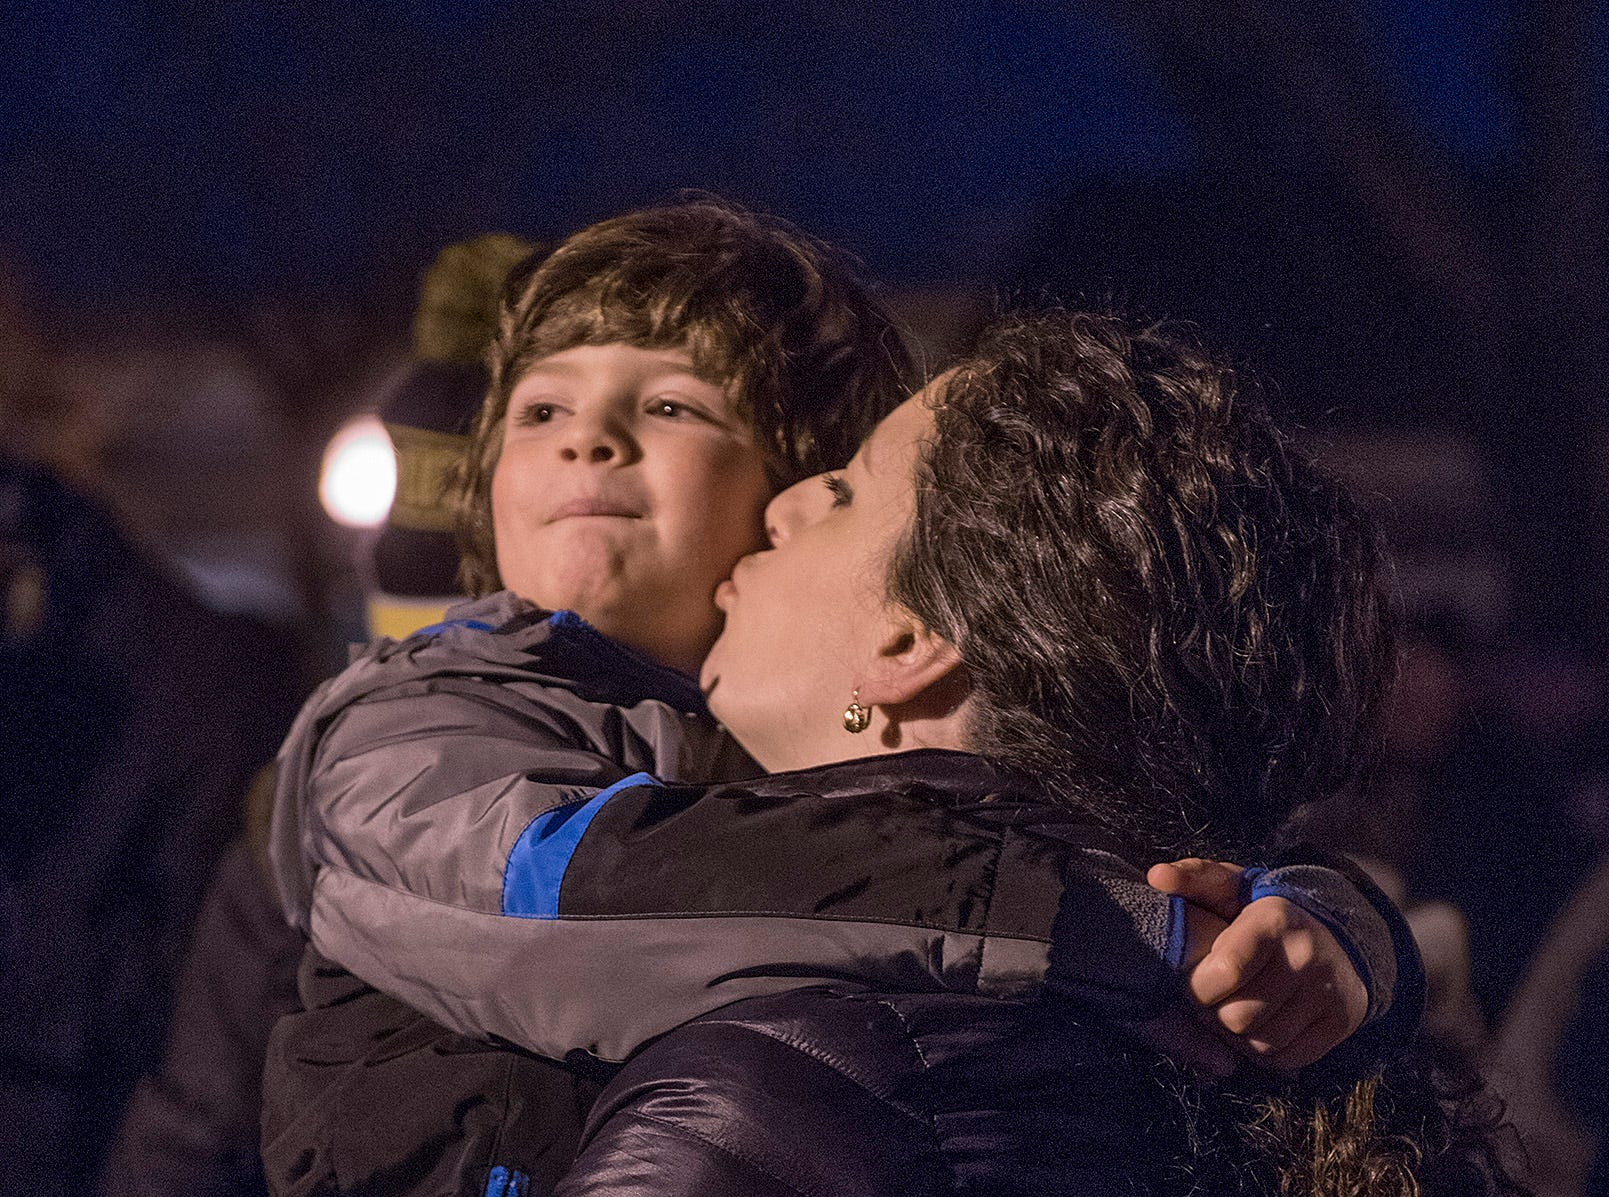 Marta Fabiilli gives son Francesco, 5 years old, a kiss as they await Santa's arrival.